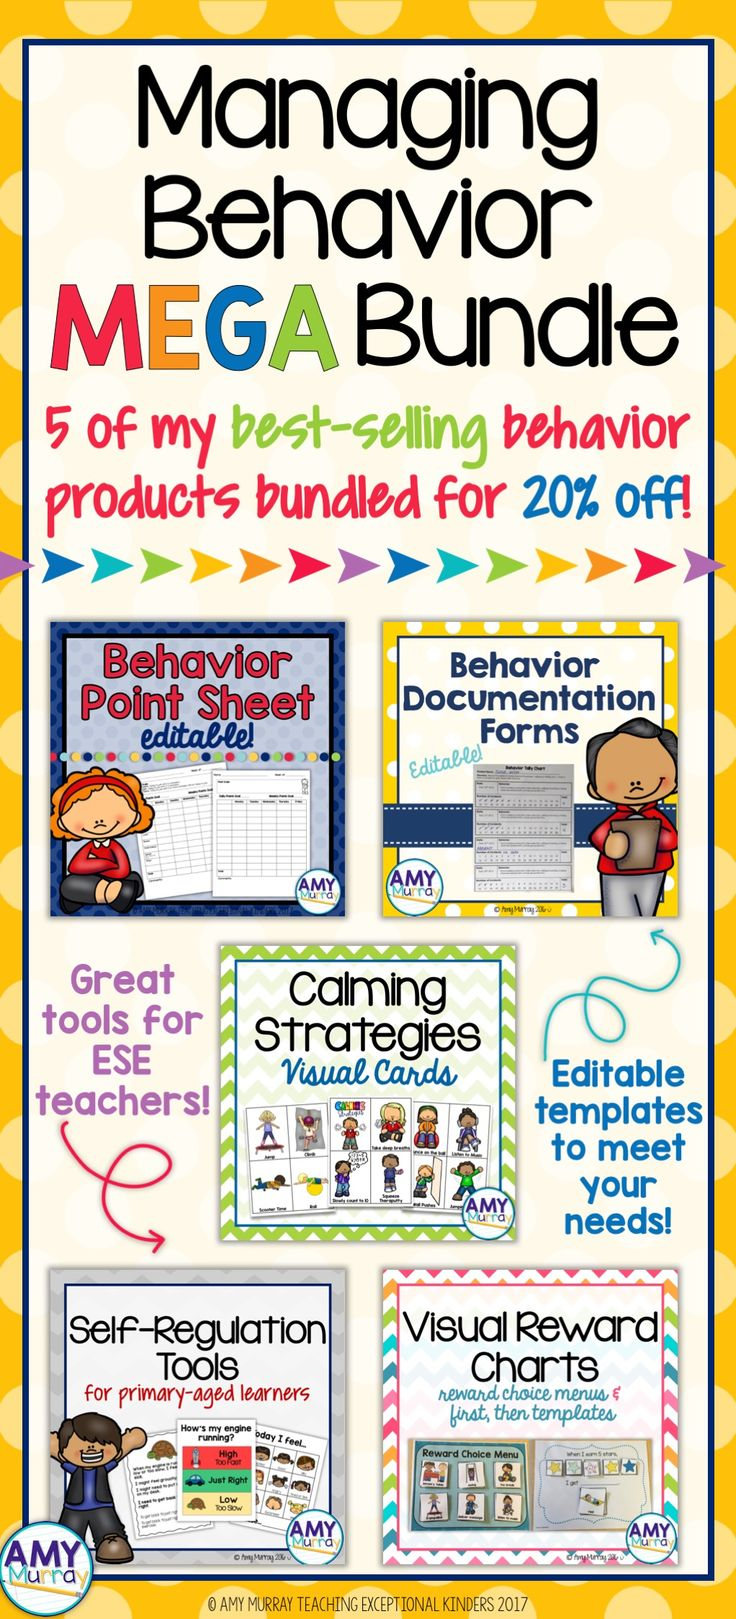 Managing Behavior MEGA bundle! 5 of my best selling behavior products to provide appropriate visuals and behavior supports for young students!